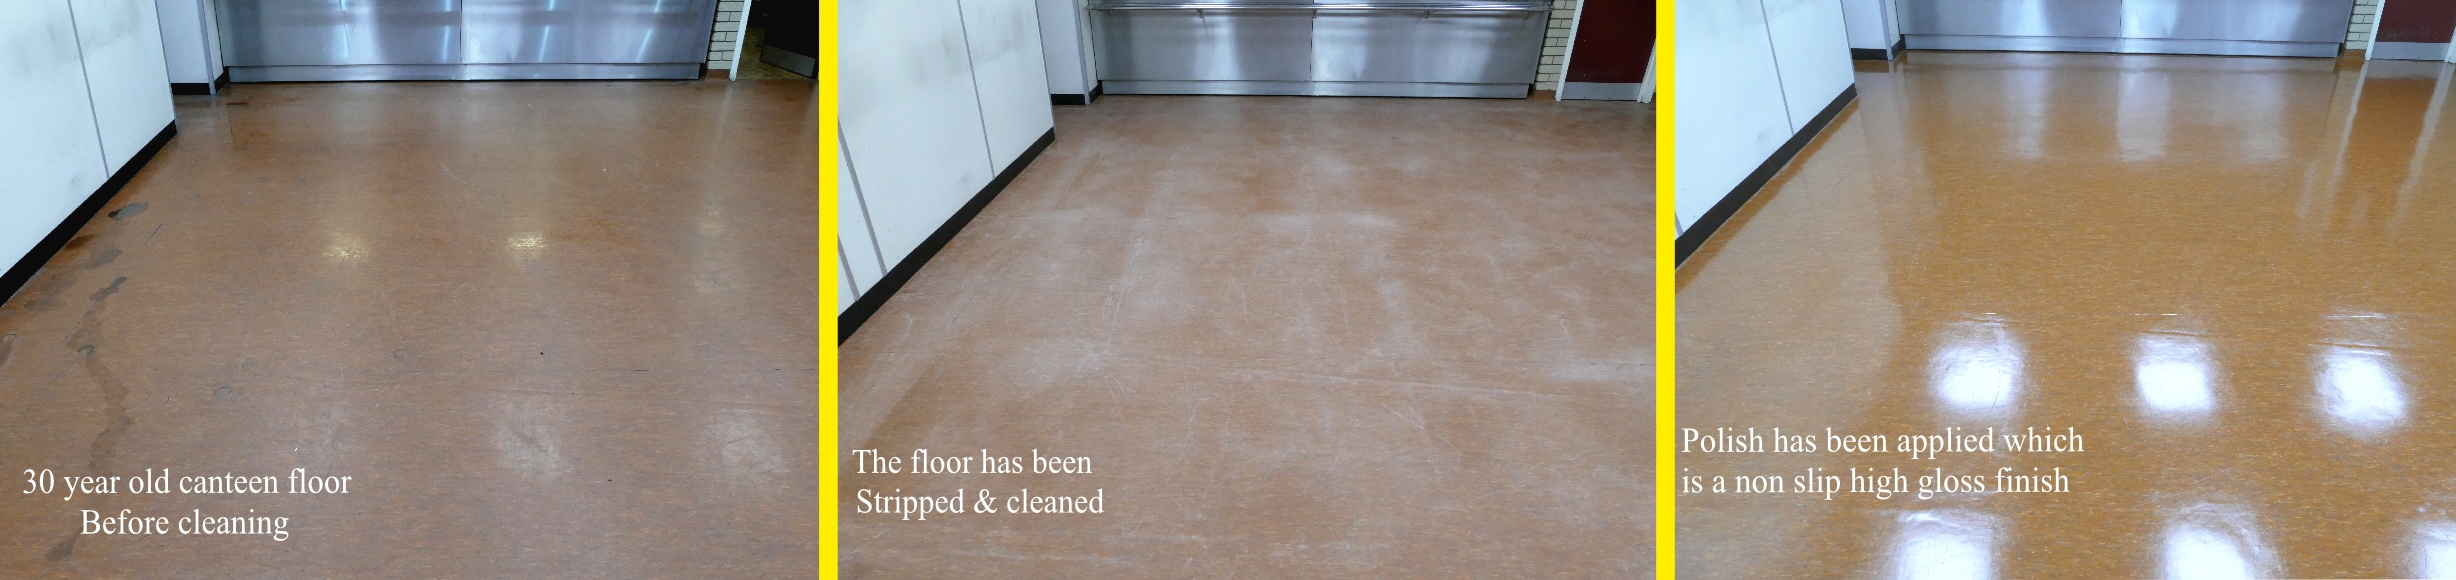 Commercial floor restoration in Cheshire